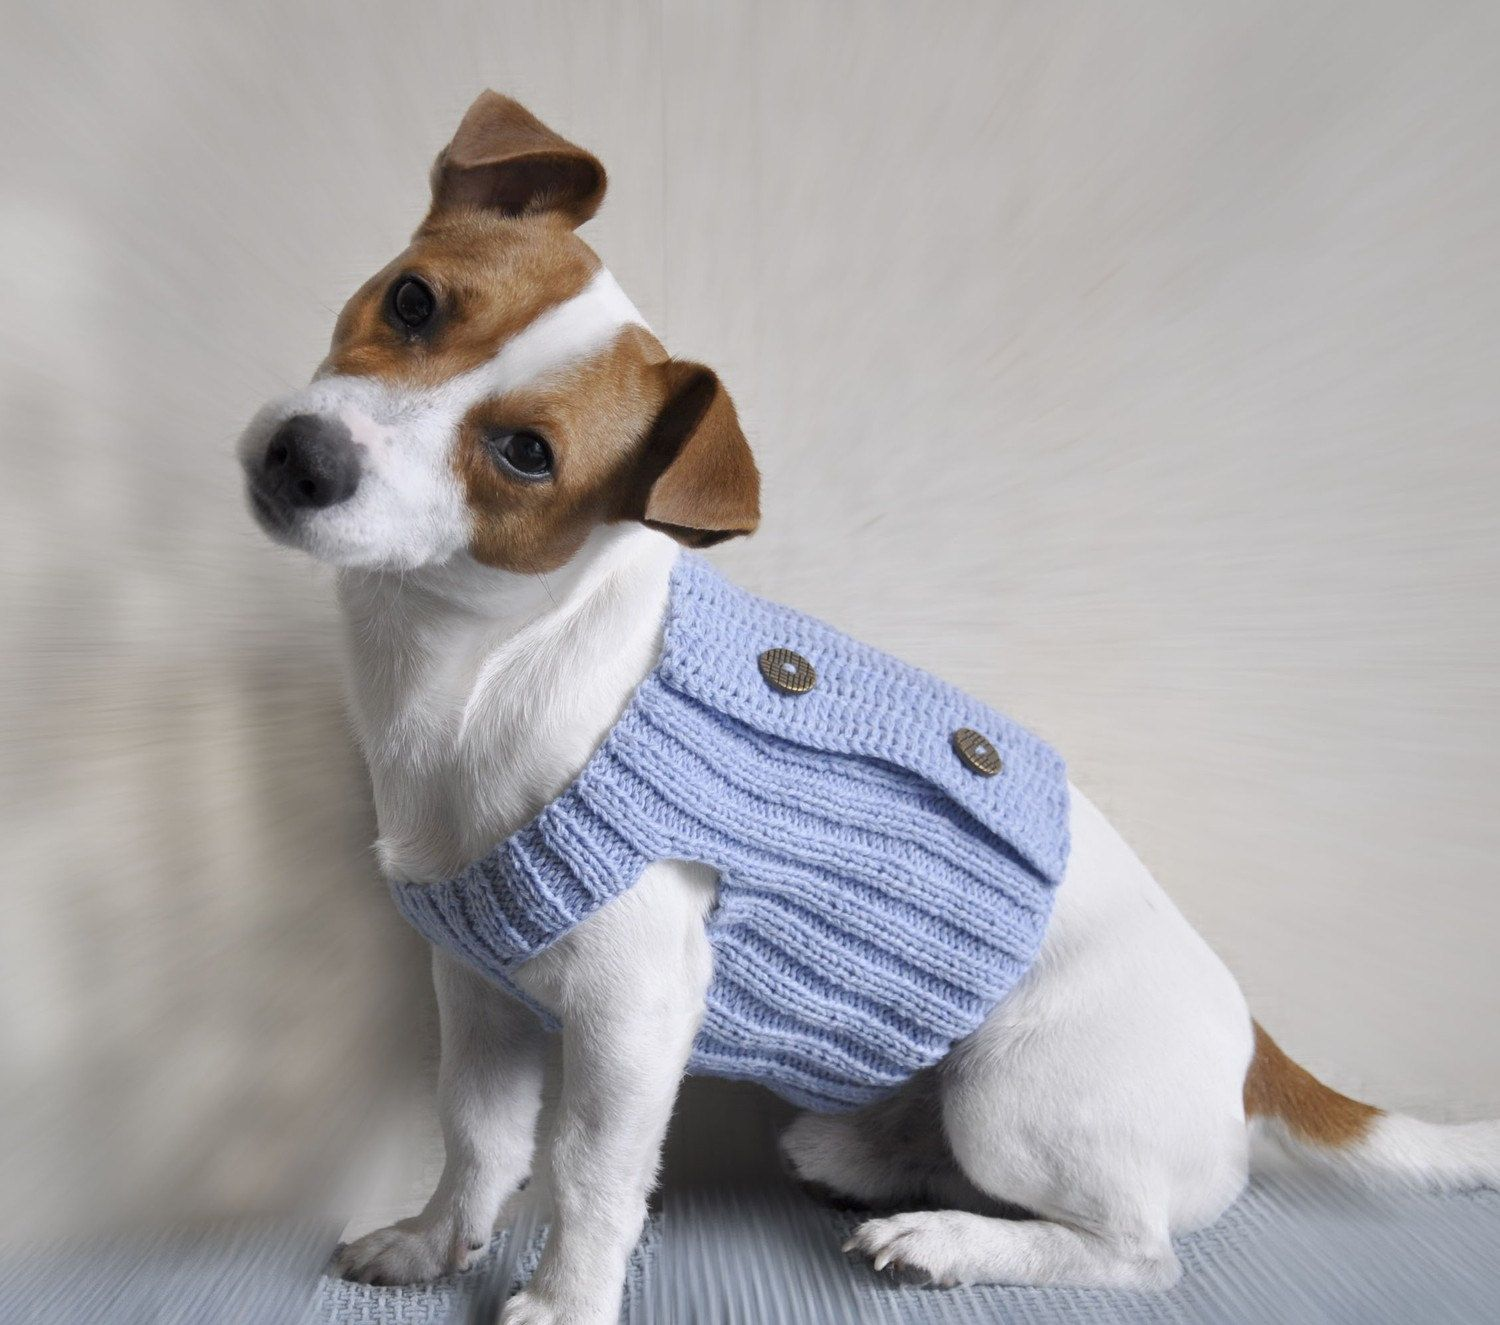 Knit and Crochet Dog Sweater - Idea for made-to-order request for ...